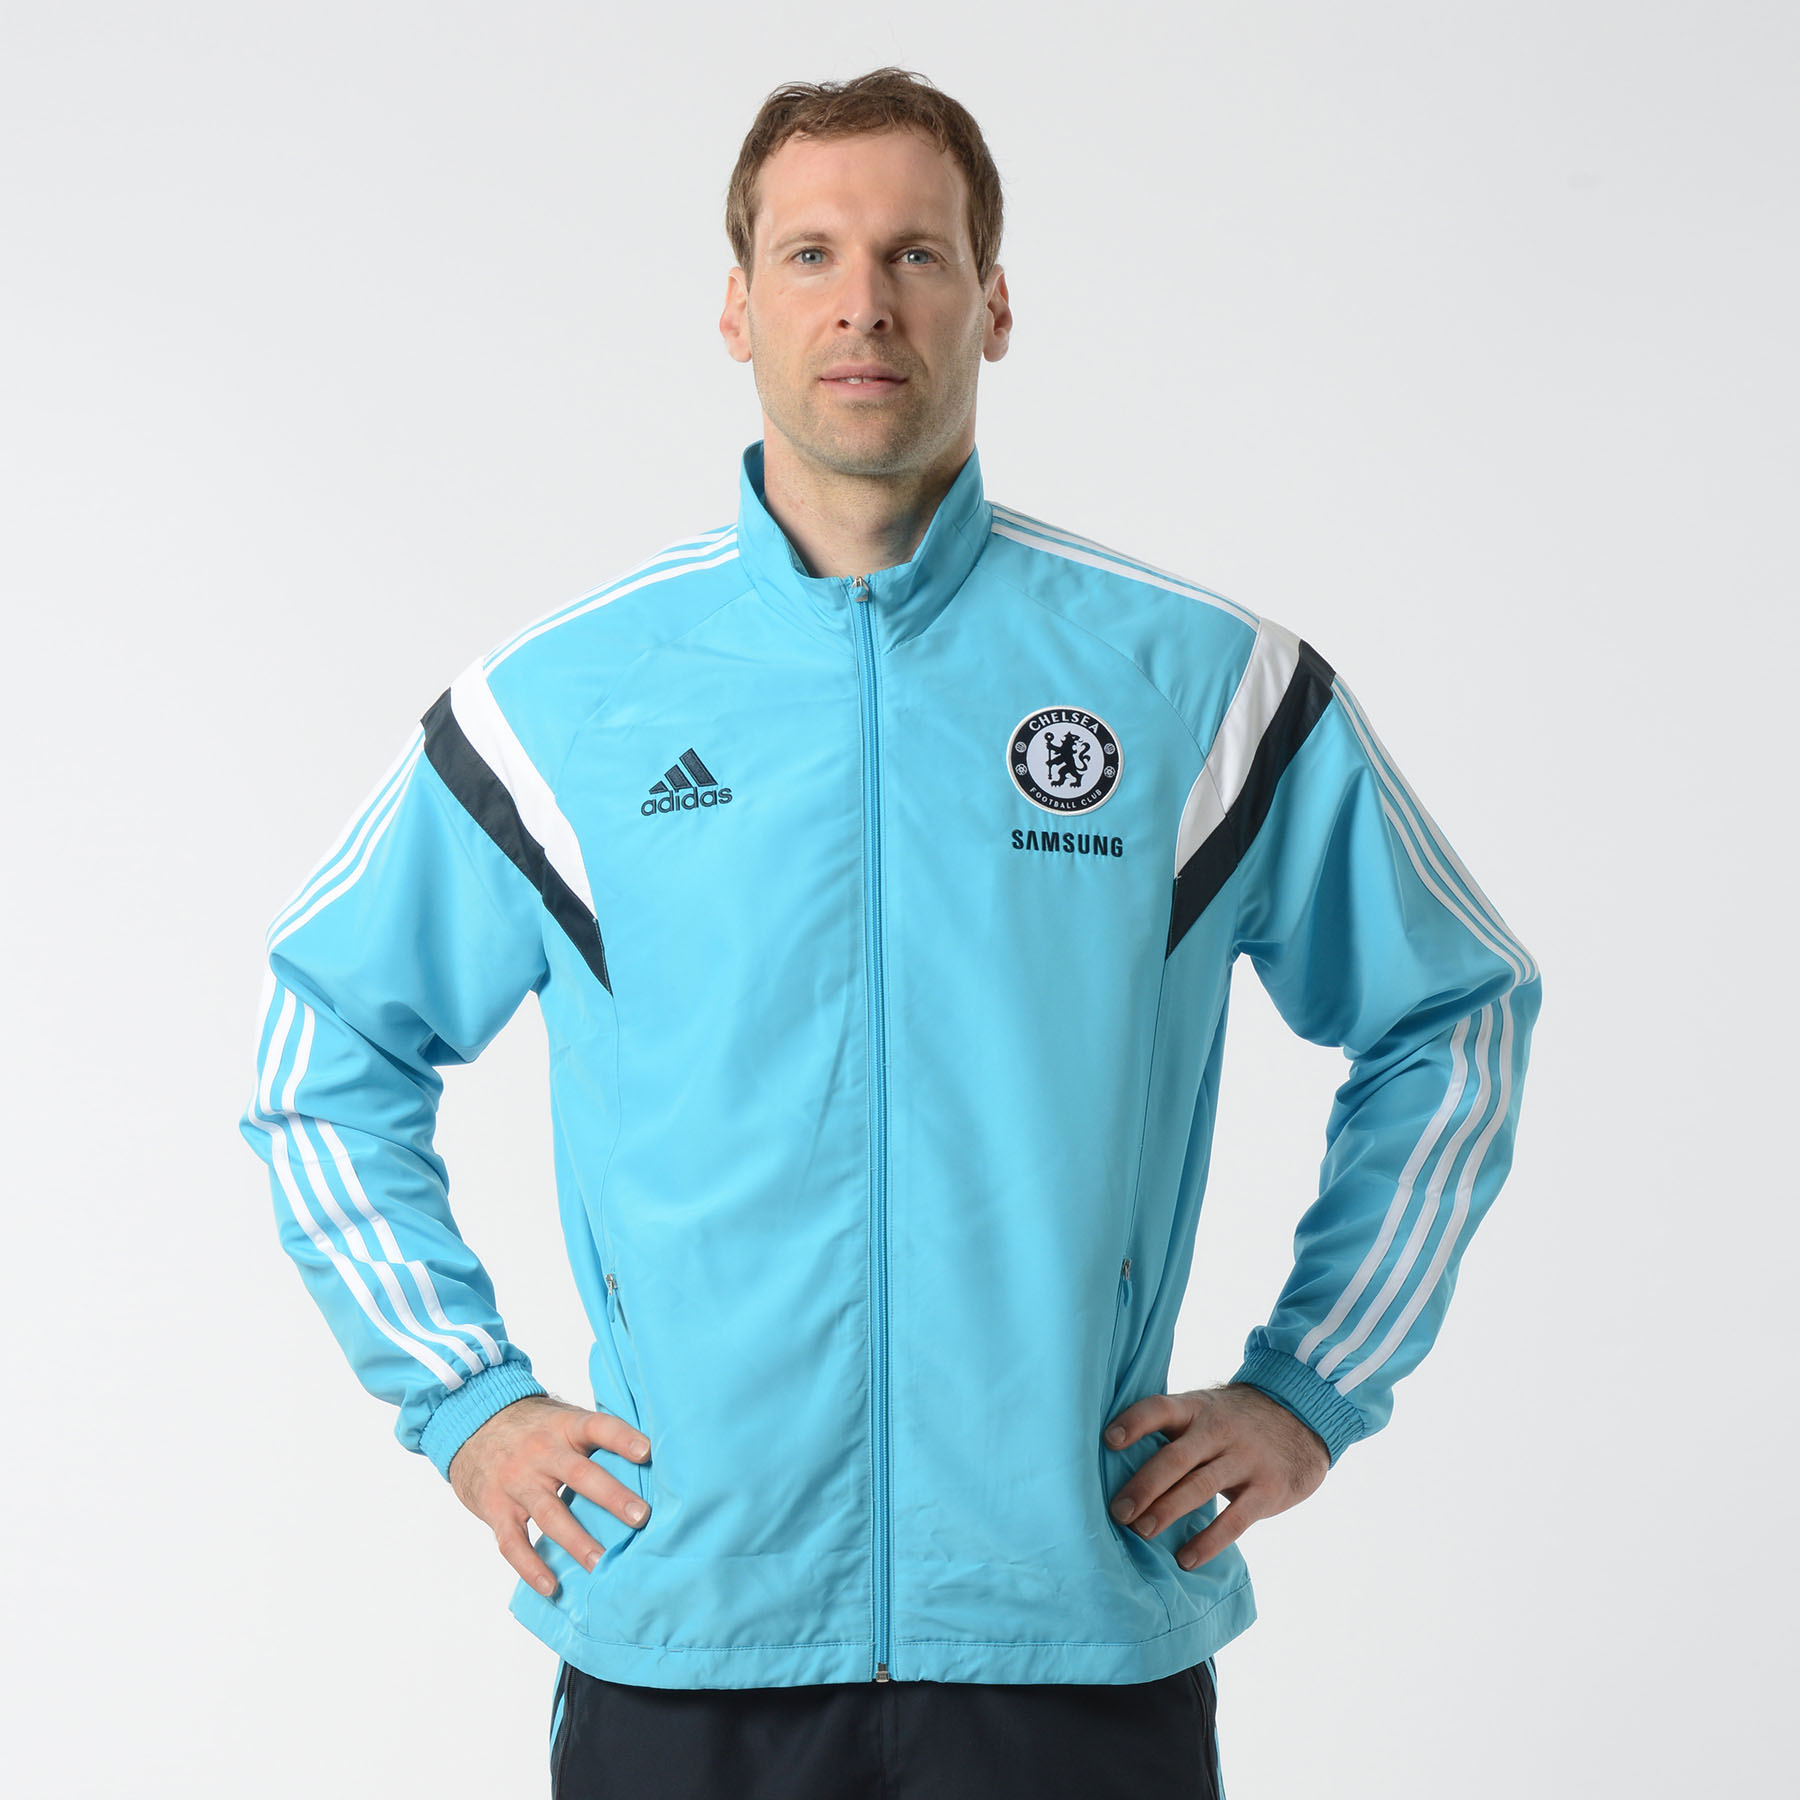 Chelsea Training Presentation Jacket Blue   Enjoy a great performance every time you play in this Chelsea Presentation Jacket. Styled with a woven Chelsea club crest and adidas three stripe logo, this blue presentation jacket was designed with style in mind.   Featuring a zip front, elasticated cuffs and a full mesh lining, this comfortable and lightweight Chelsea presentation suit is perfect whether you're training or traveling down to Stamford Bridge.   Benefits of this Chelsea presentation suit •Built with a full mesh lining which li